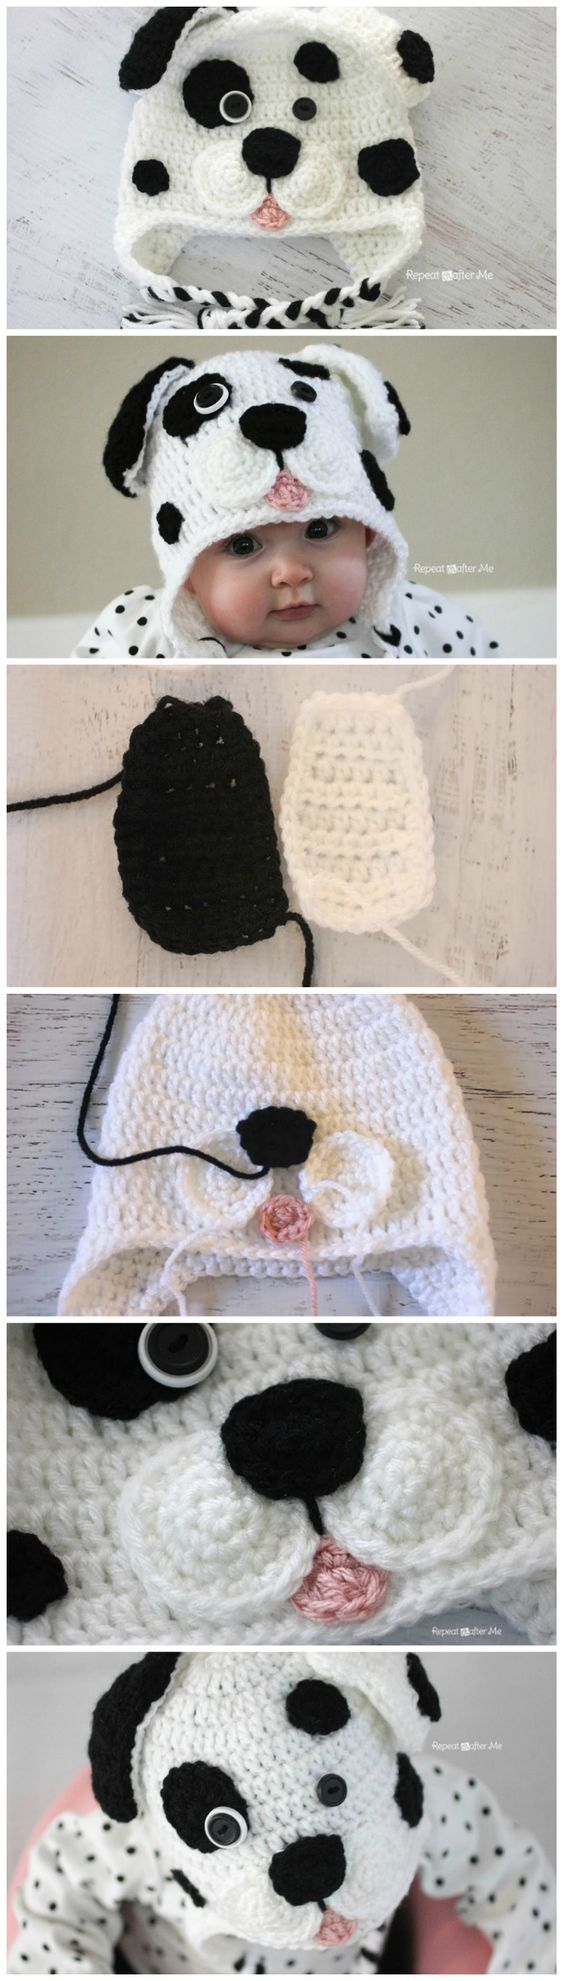 DIY Crochet Dalmatian Dog Baby Hat – Free Pattern: